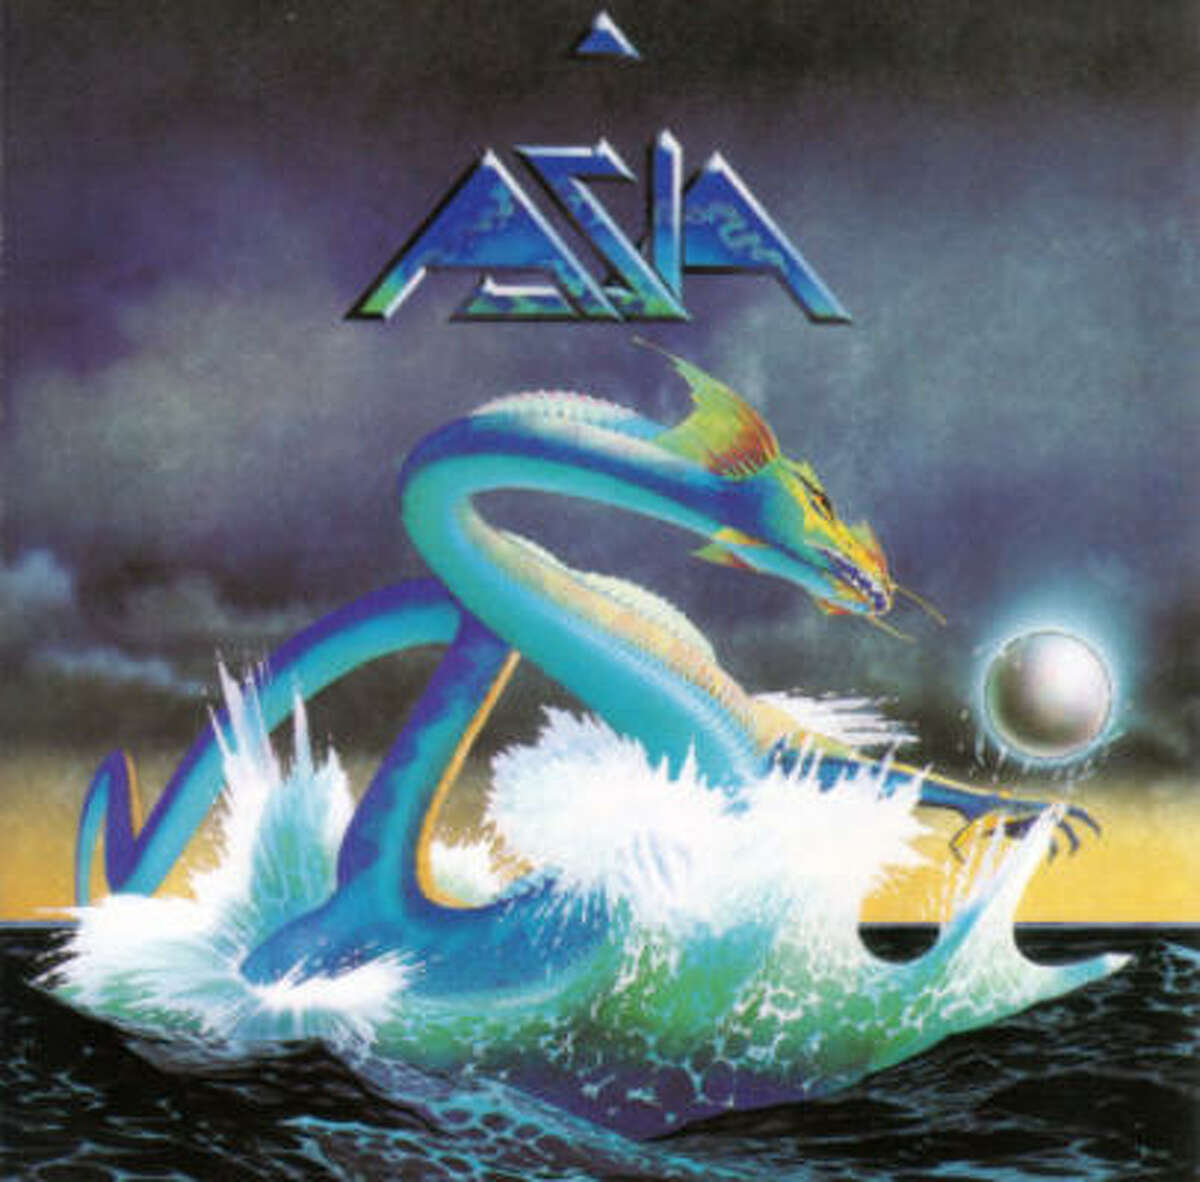 Asia : This band formed in 1981 as the result of the breakup of several other bands, including Yes and Emerson, Lake & Palmer. House of Blues Aug. 21